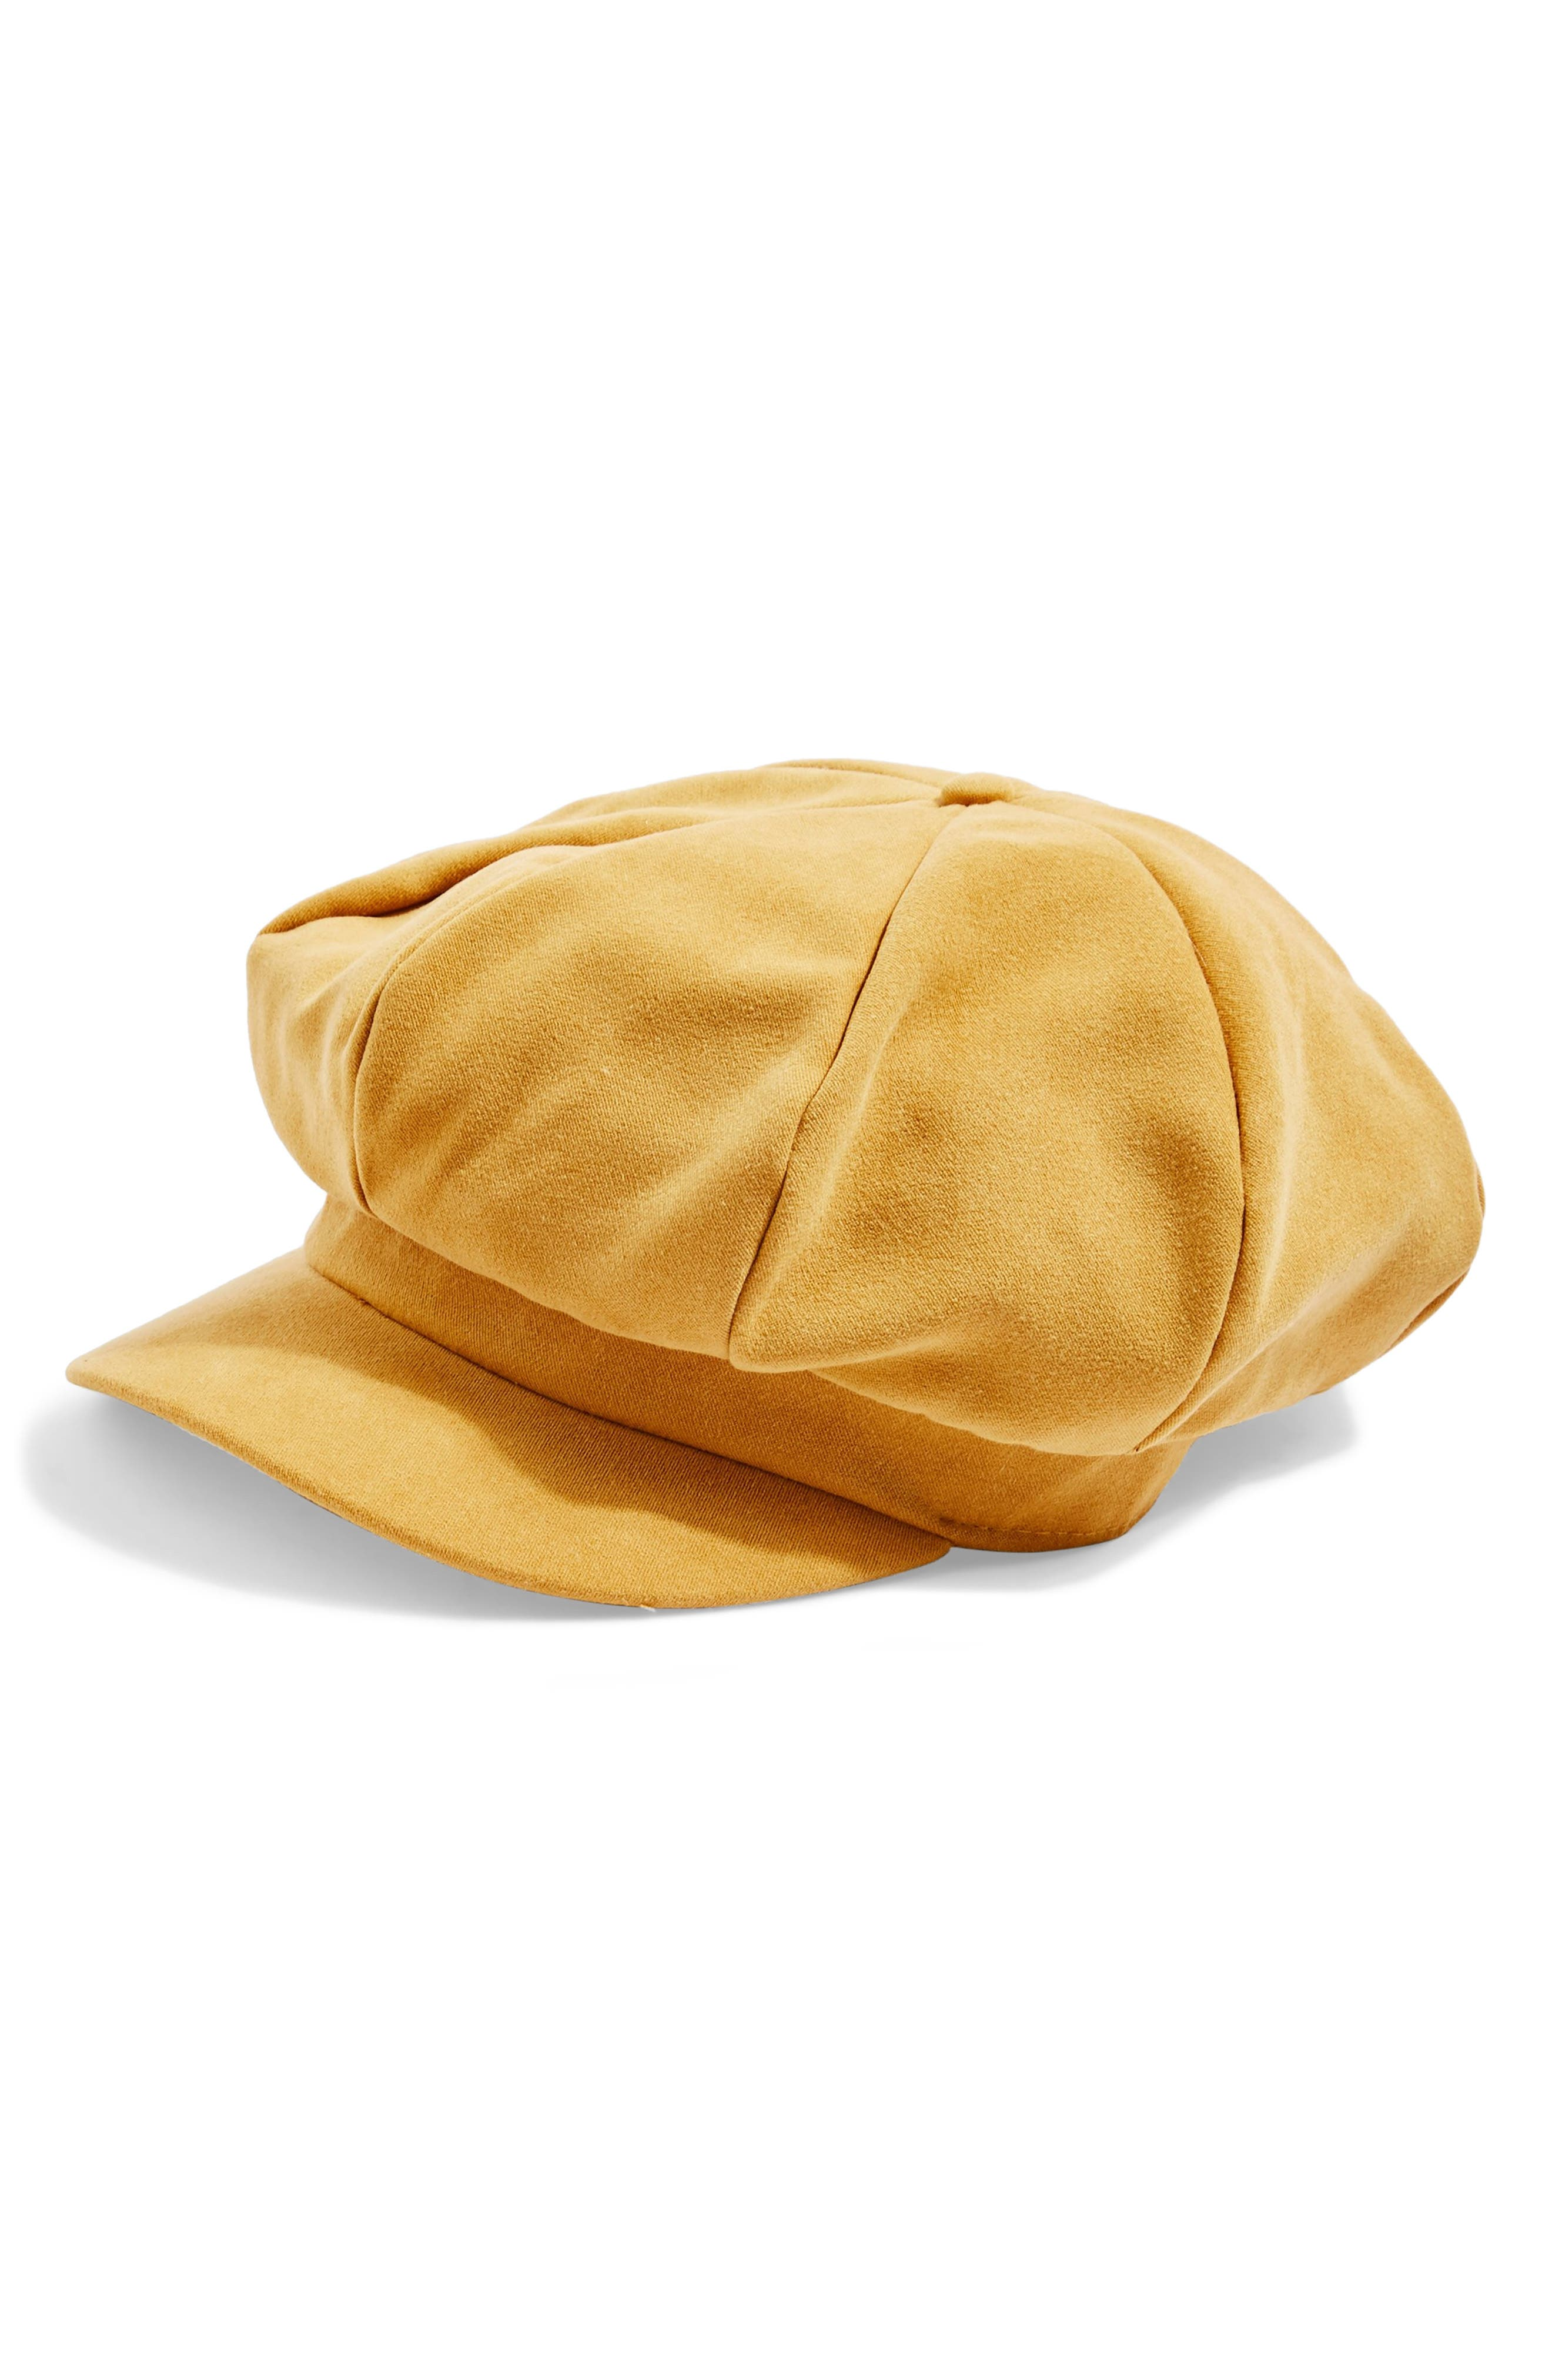 Slouchy Baker Boy Hat,                         Main,                         color, MUSTARD